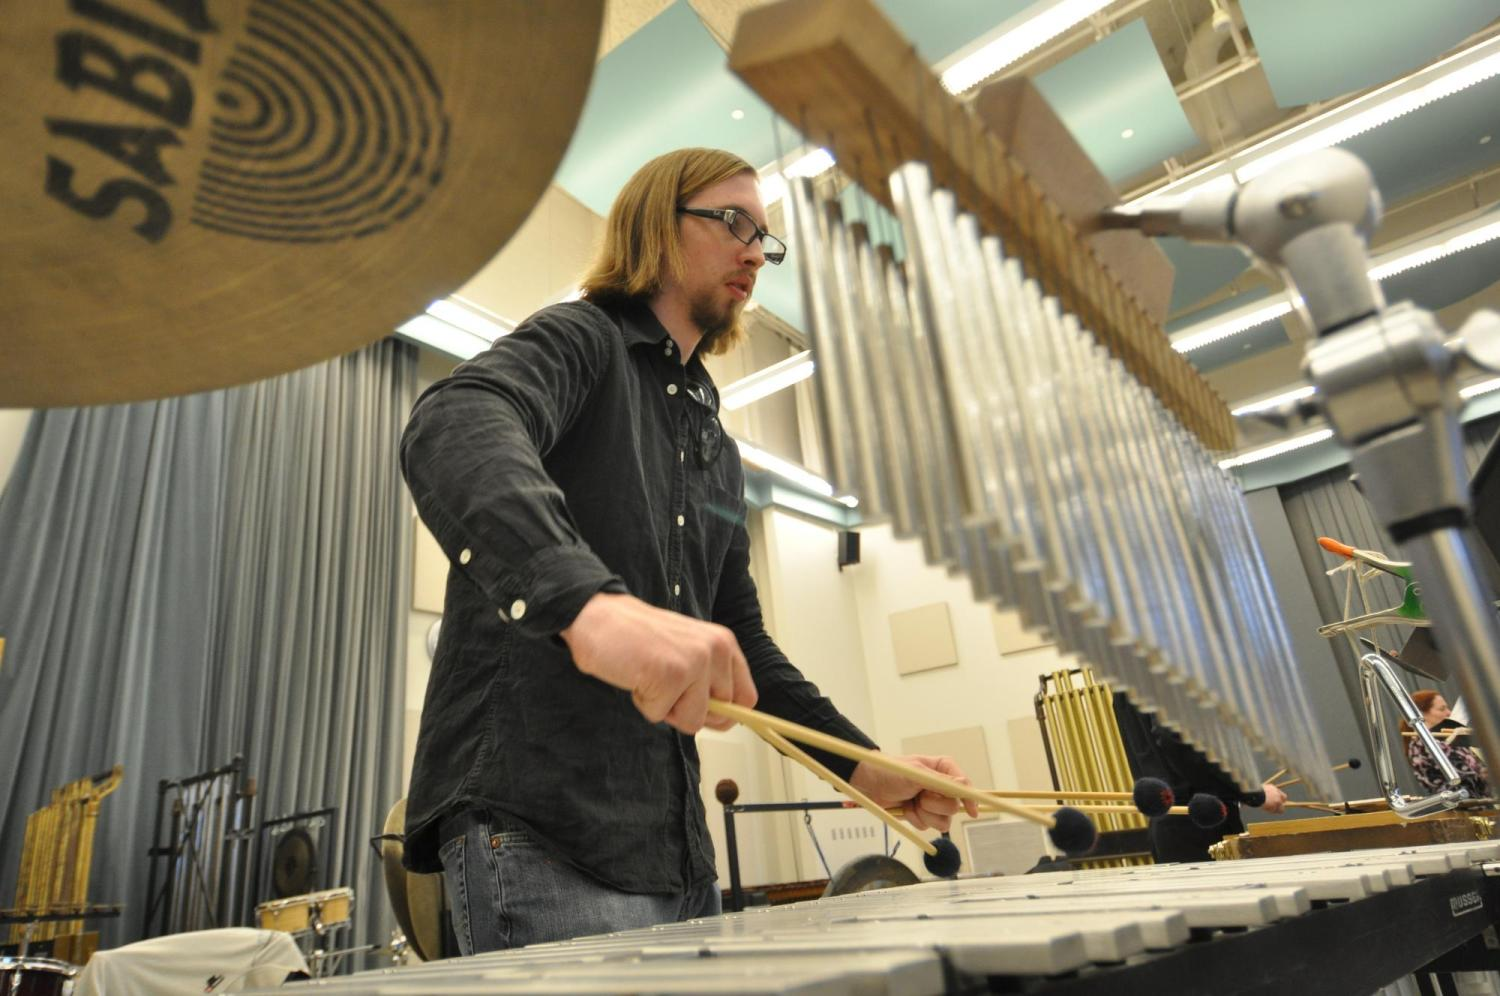 A student using four mallets on the vibraphone